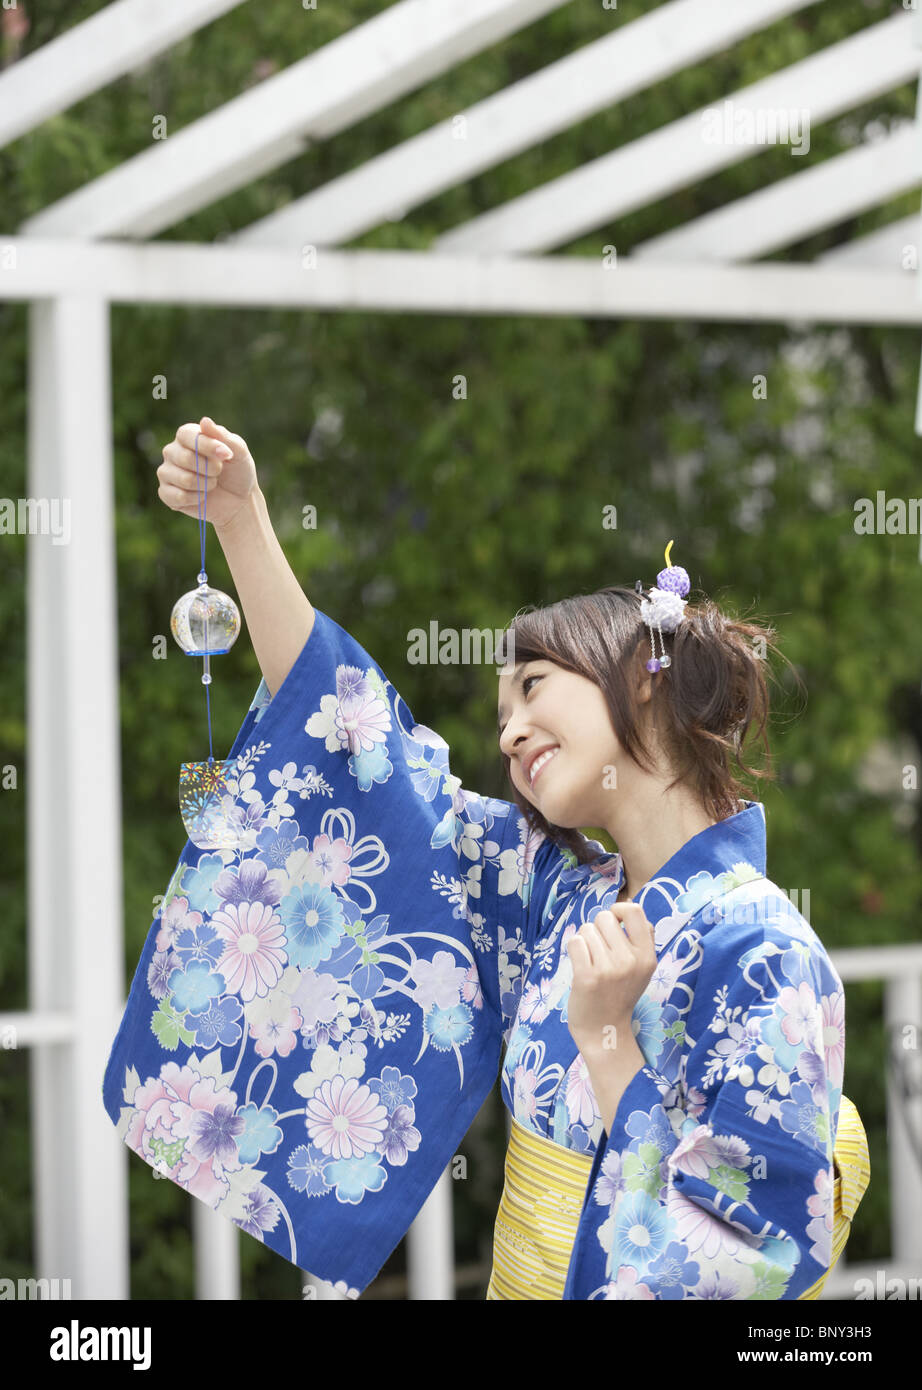 Young woman looking at wind chime Stock Photo